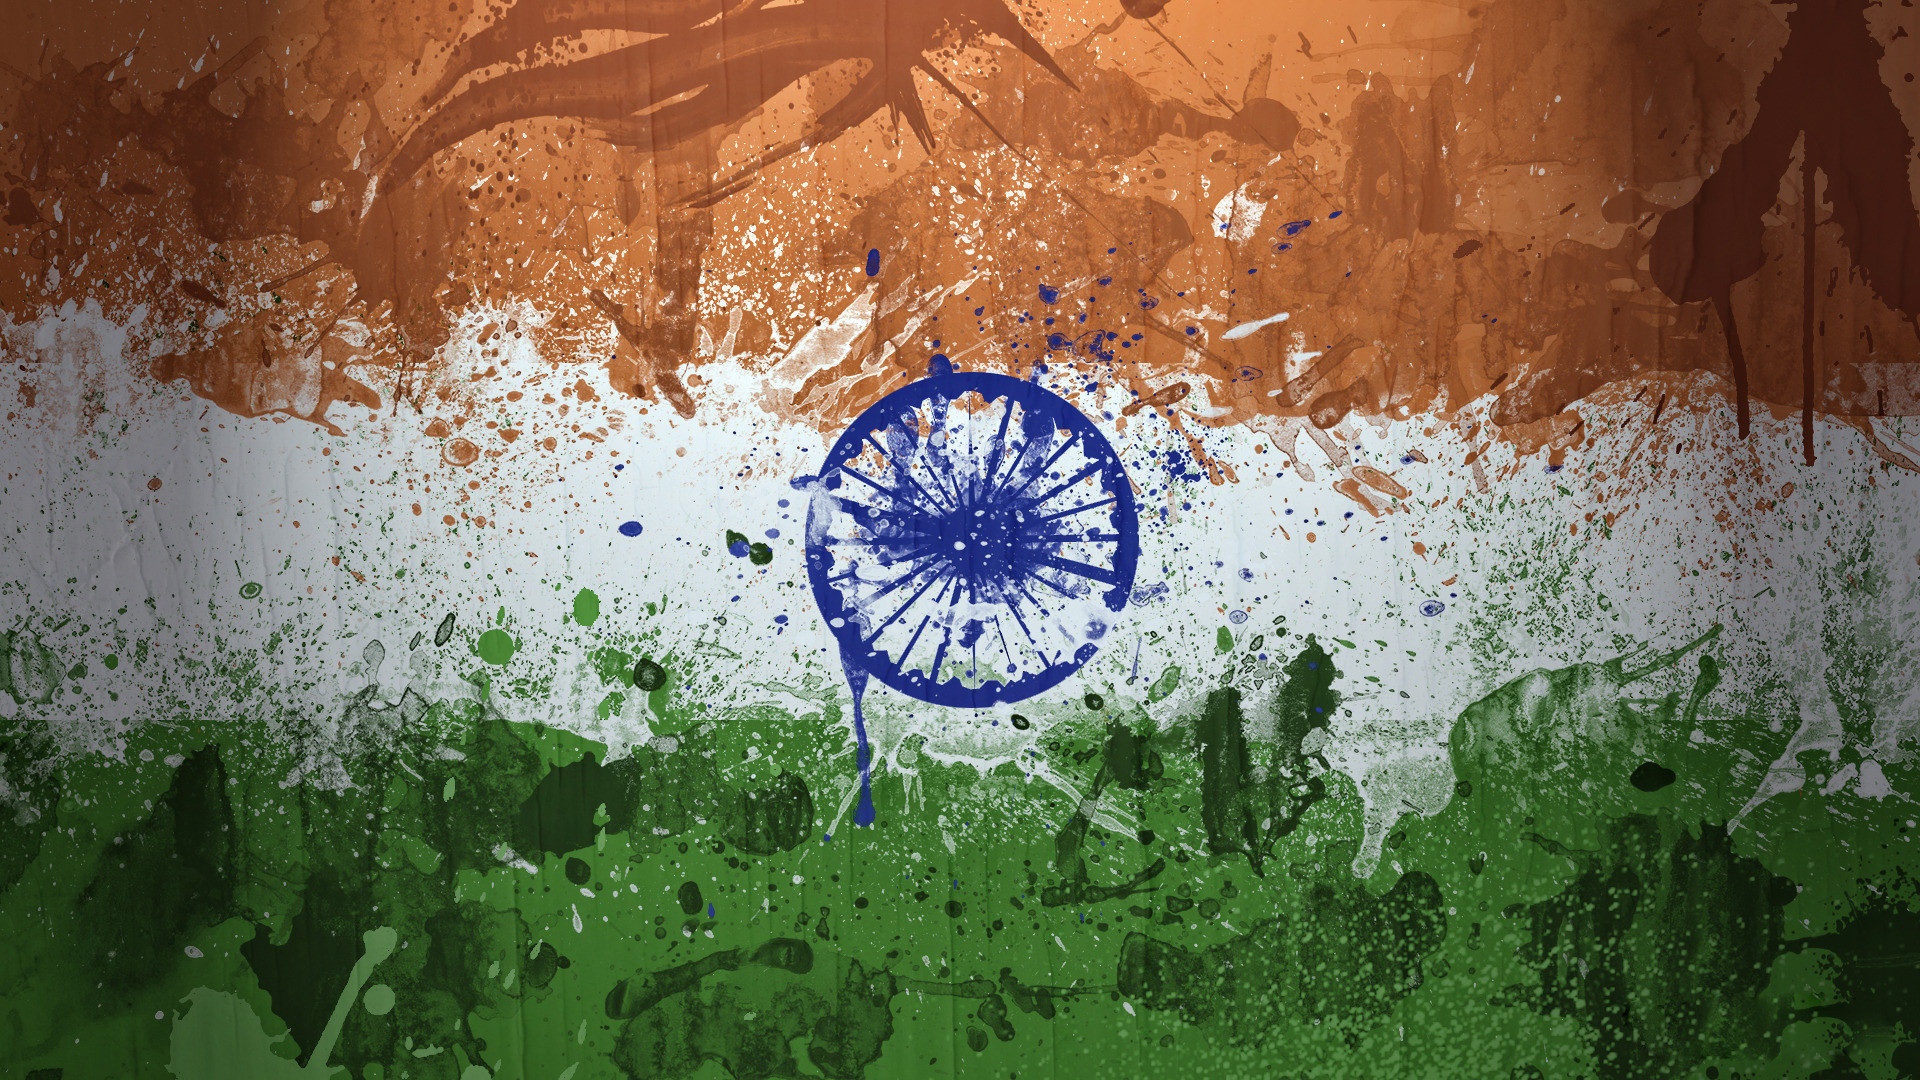 Hd wallpaper india 67 images 1920x1200 indian army wallpapers for mobile phones google search voltagebd Choice Image